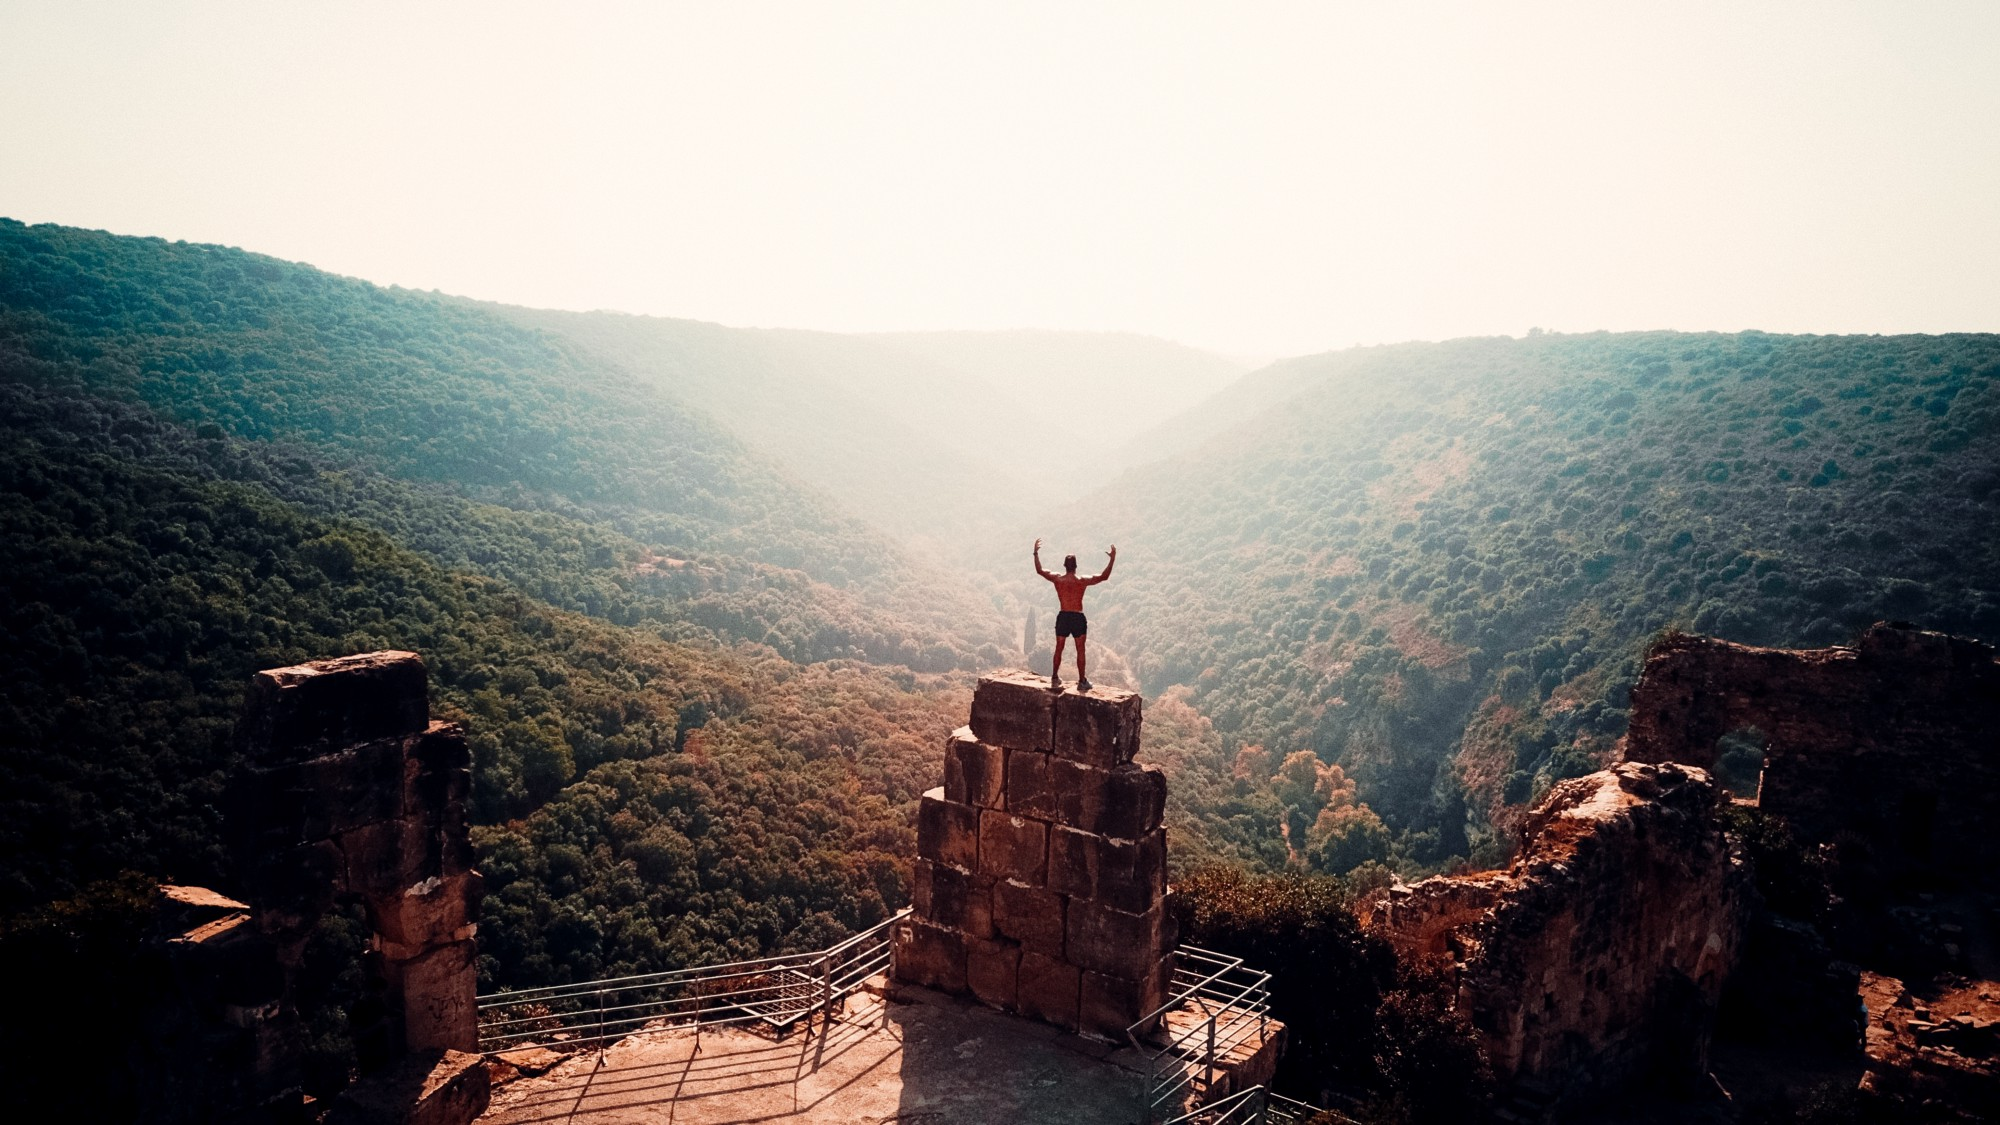 Man standing on top of pillar with arms outstretched. Mountains in the background.